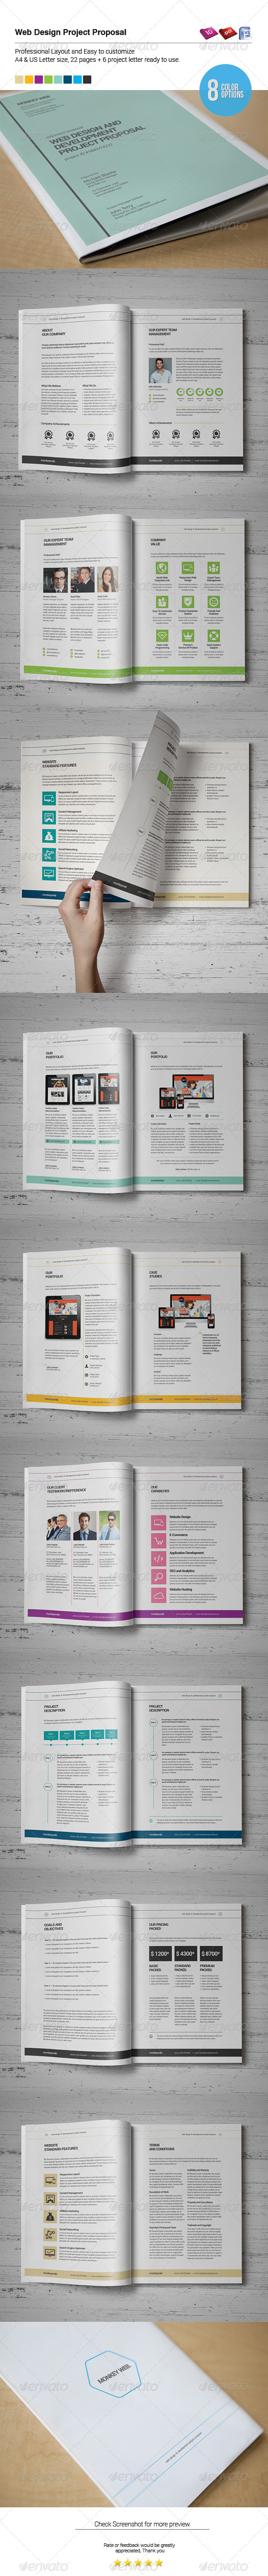 GraphicRiver Web Design Proposal 6634012